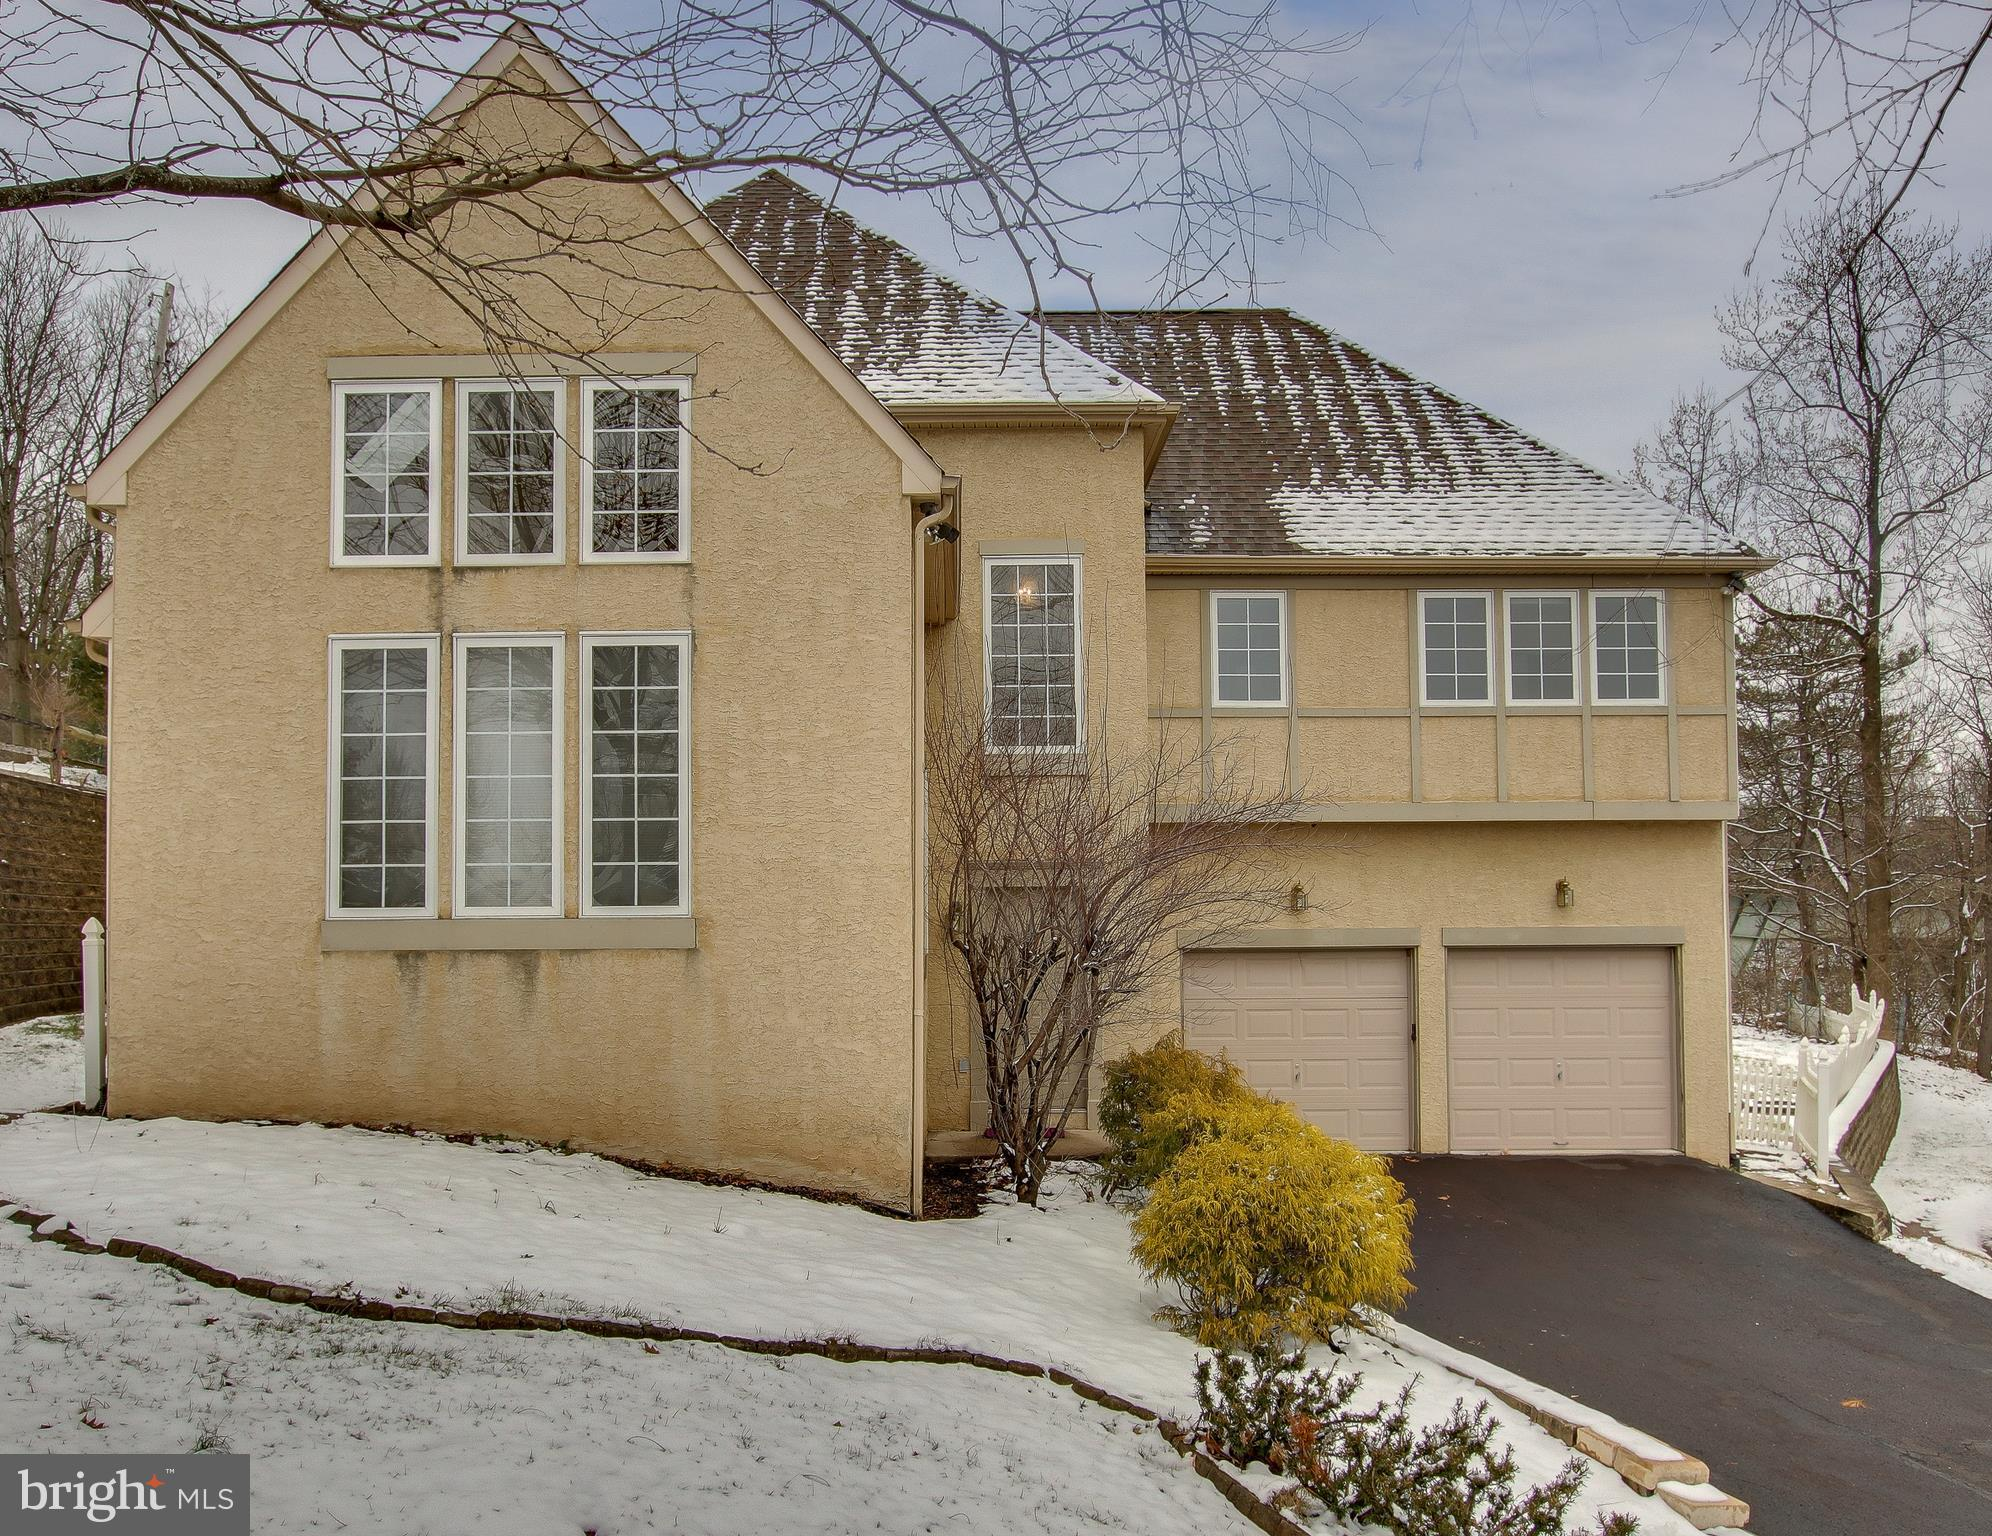 600 FORGE SPRINGS WAY, KING OF PRUSSIA, PA 19406